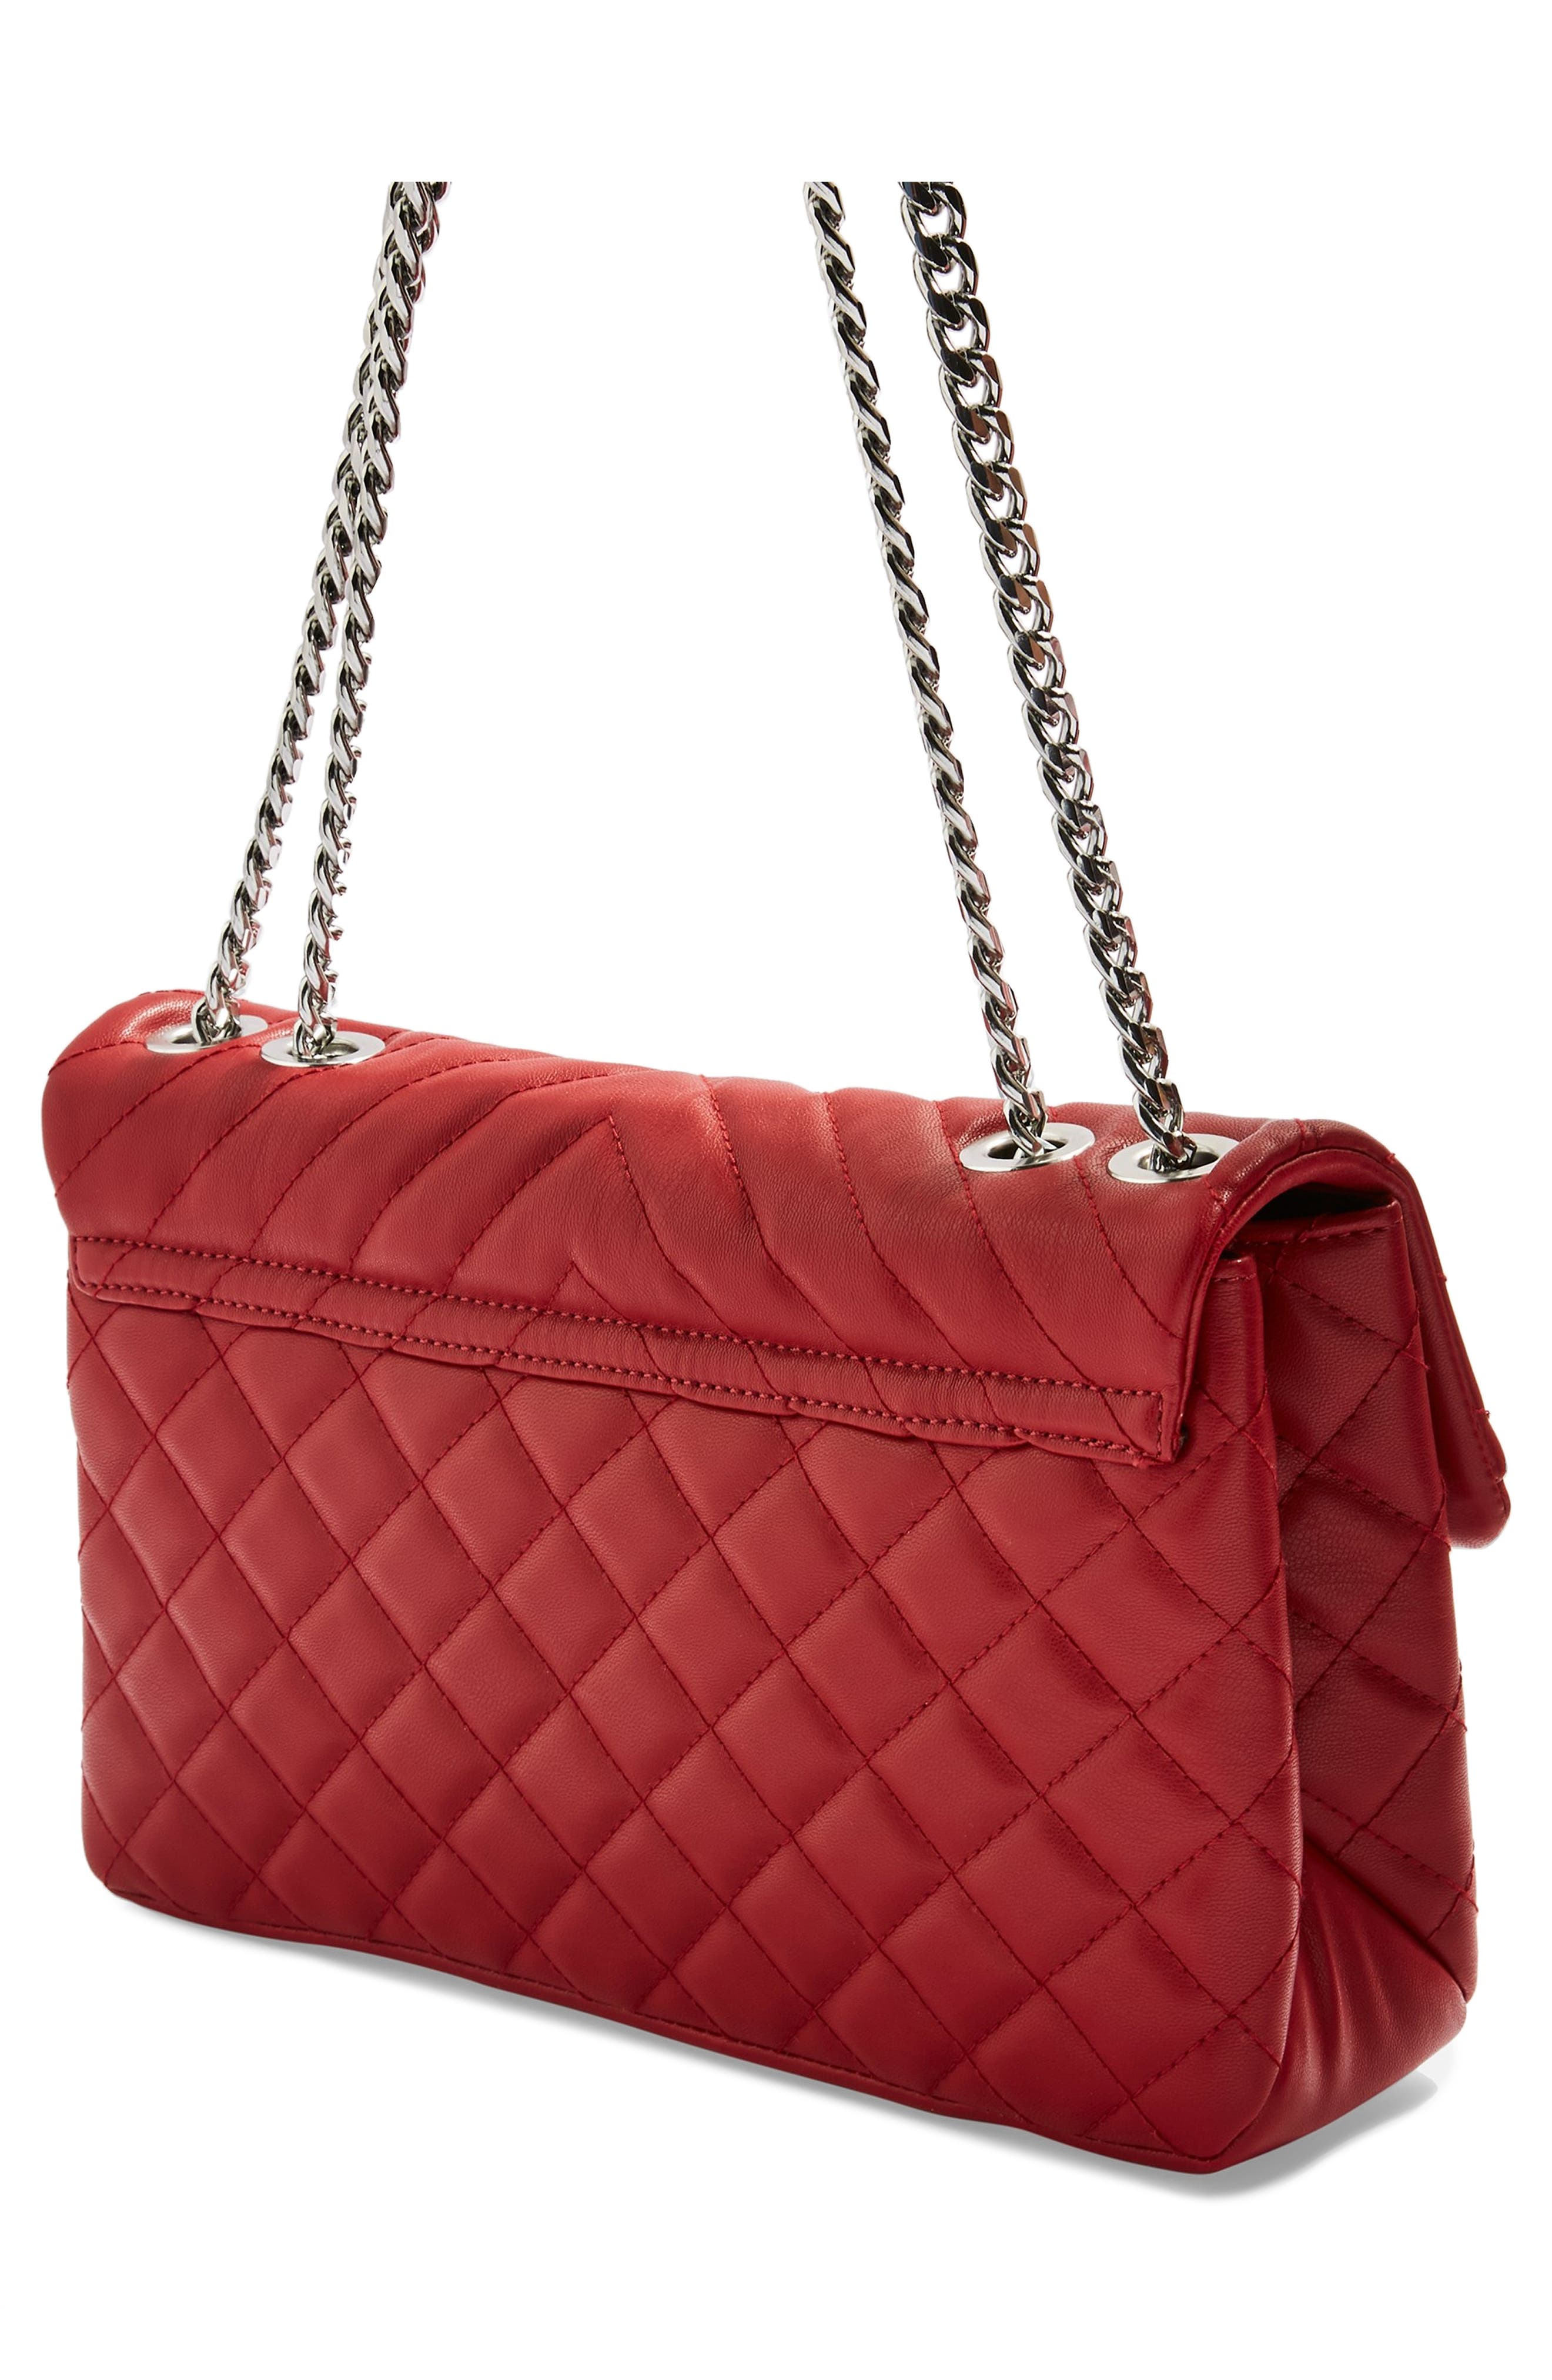 Panther Quilted Faux Leather Shoulder Bag,                             Alternate thumbnail 3, color,                             RED MULTI